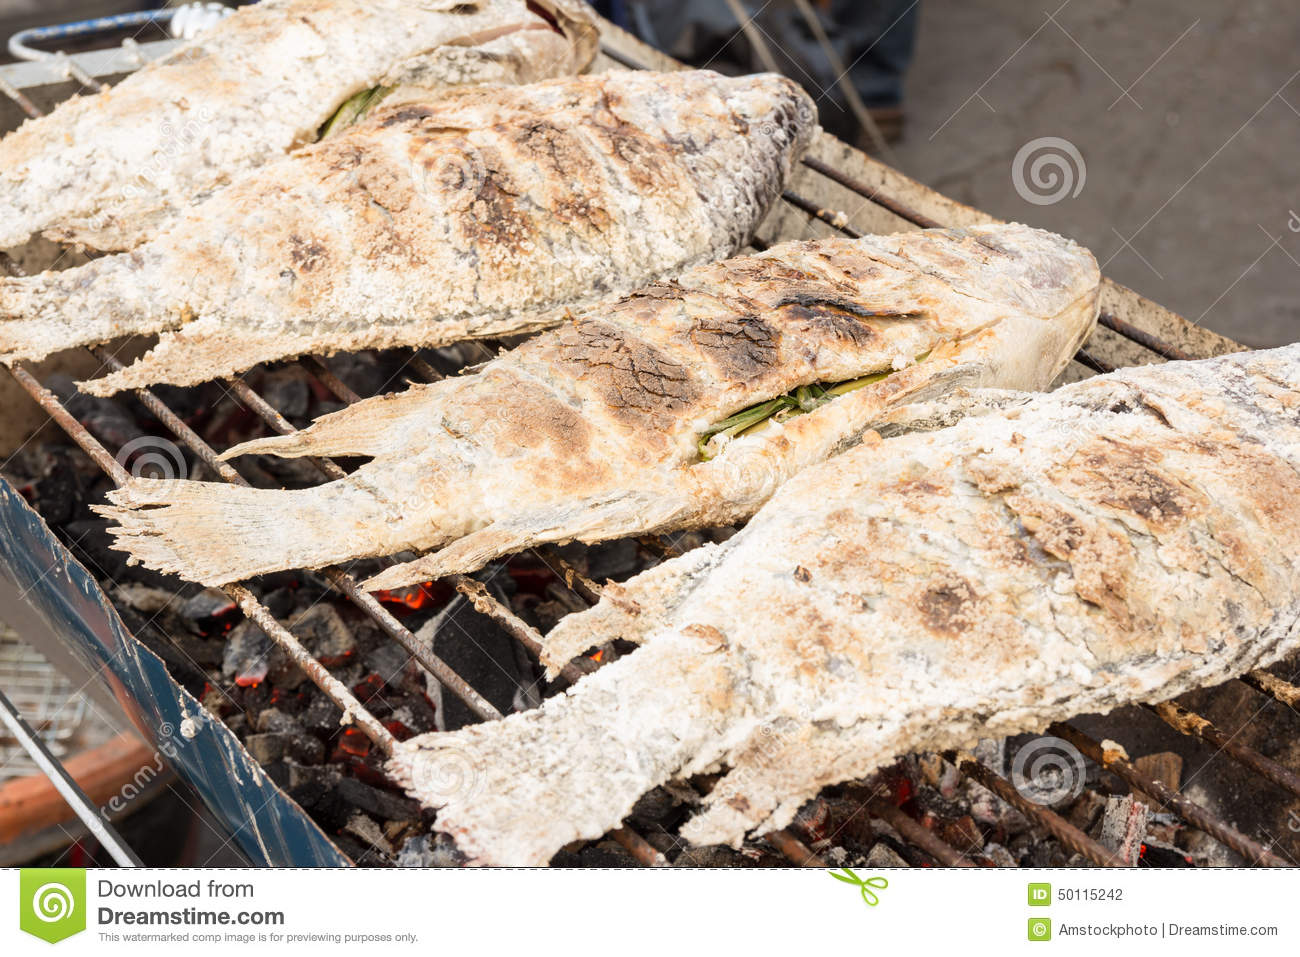 Grilled white snapper fish coated rock salt stock photo for Oak city fish and chips menu